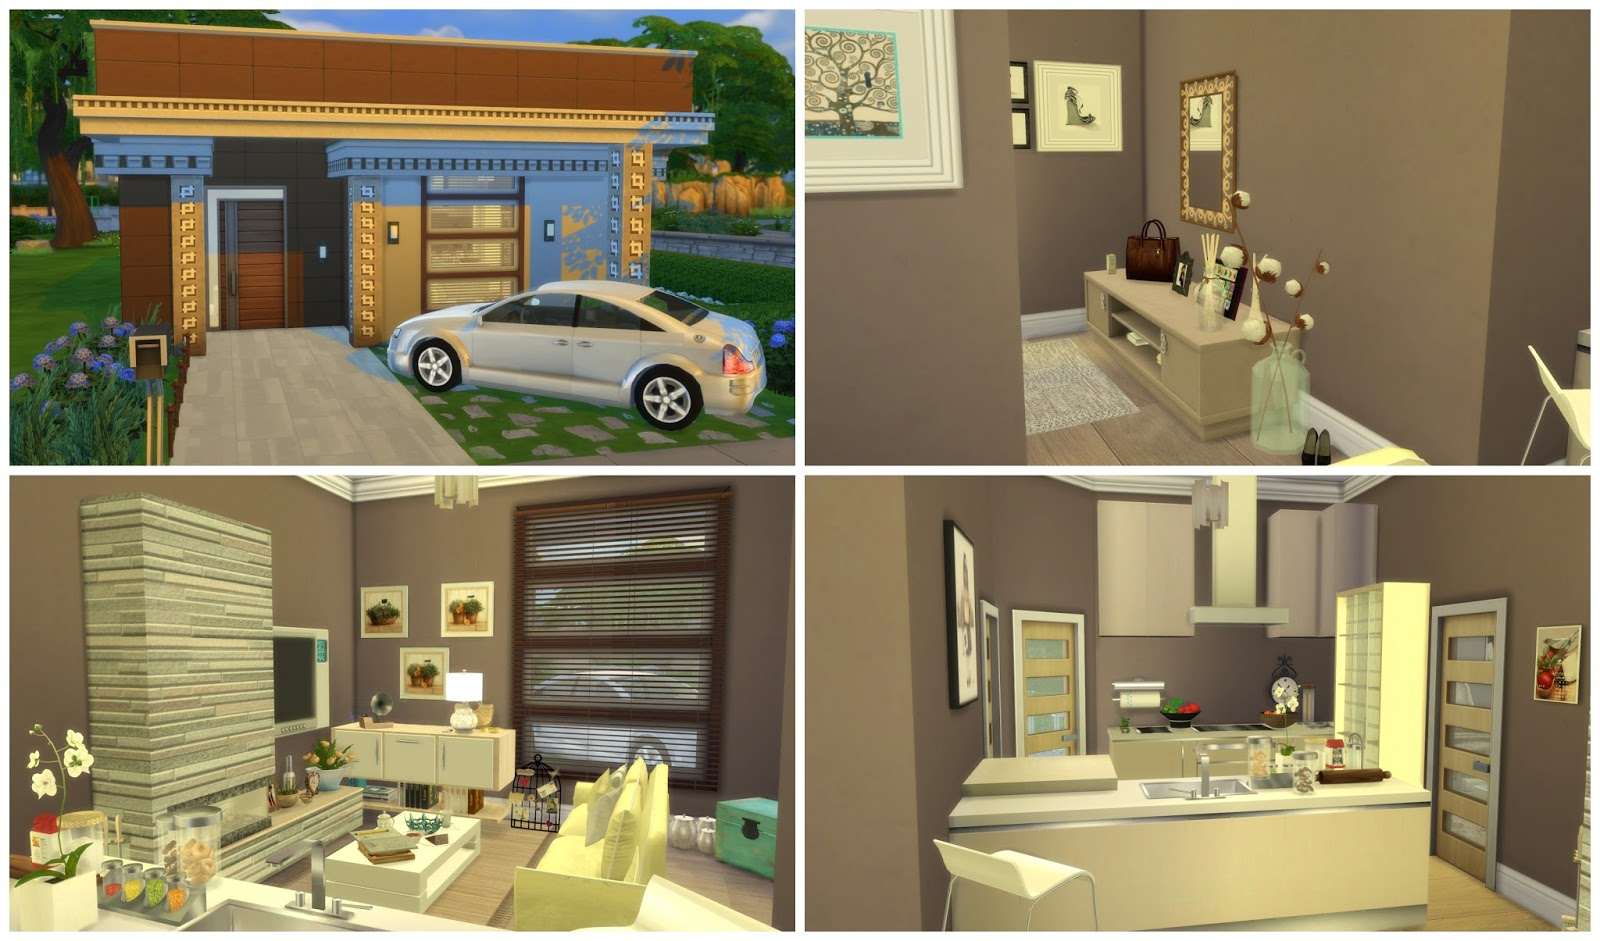 PicMonkey%2BCollage1 - Download Sims 4 Small Modern House Ideas Gif